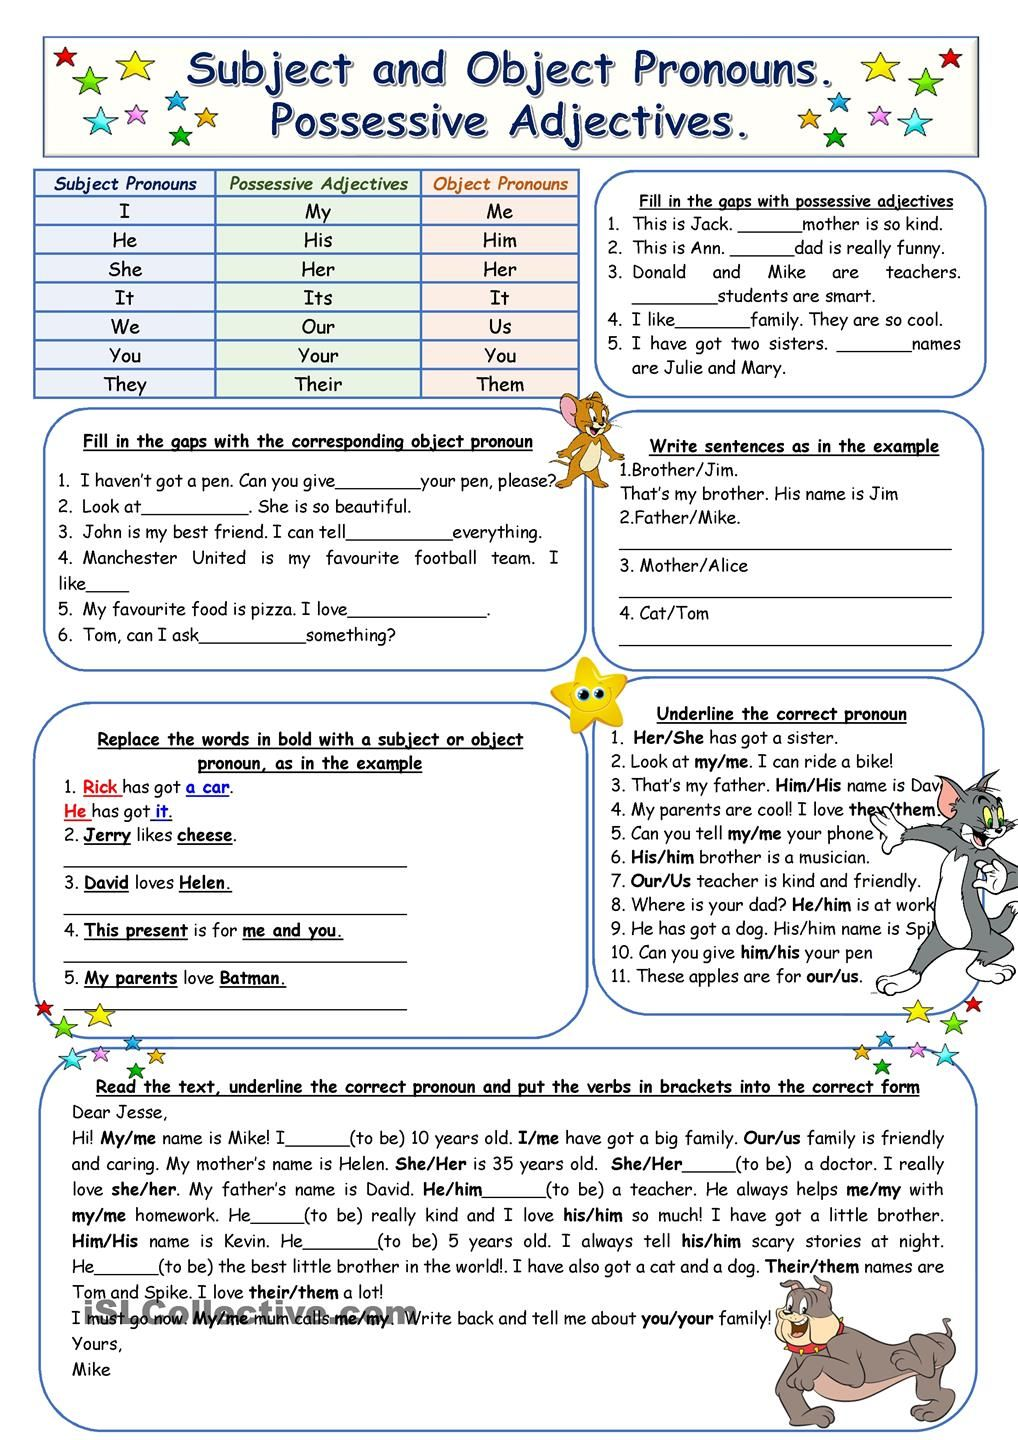 Subject and Object Pronouns. Possessive Adjectives